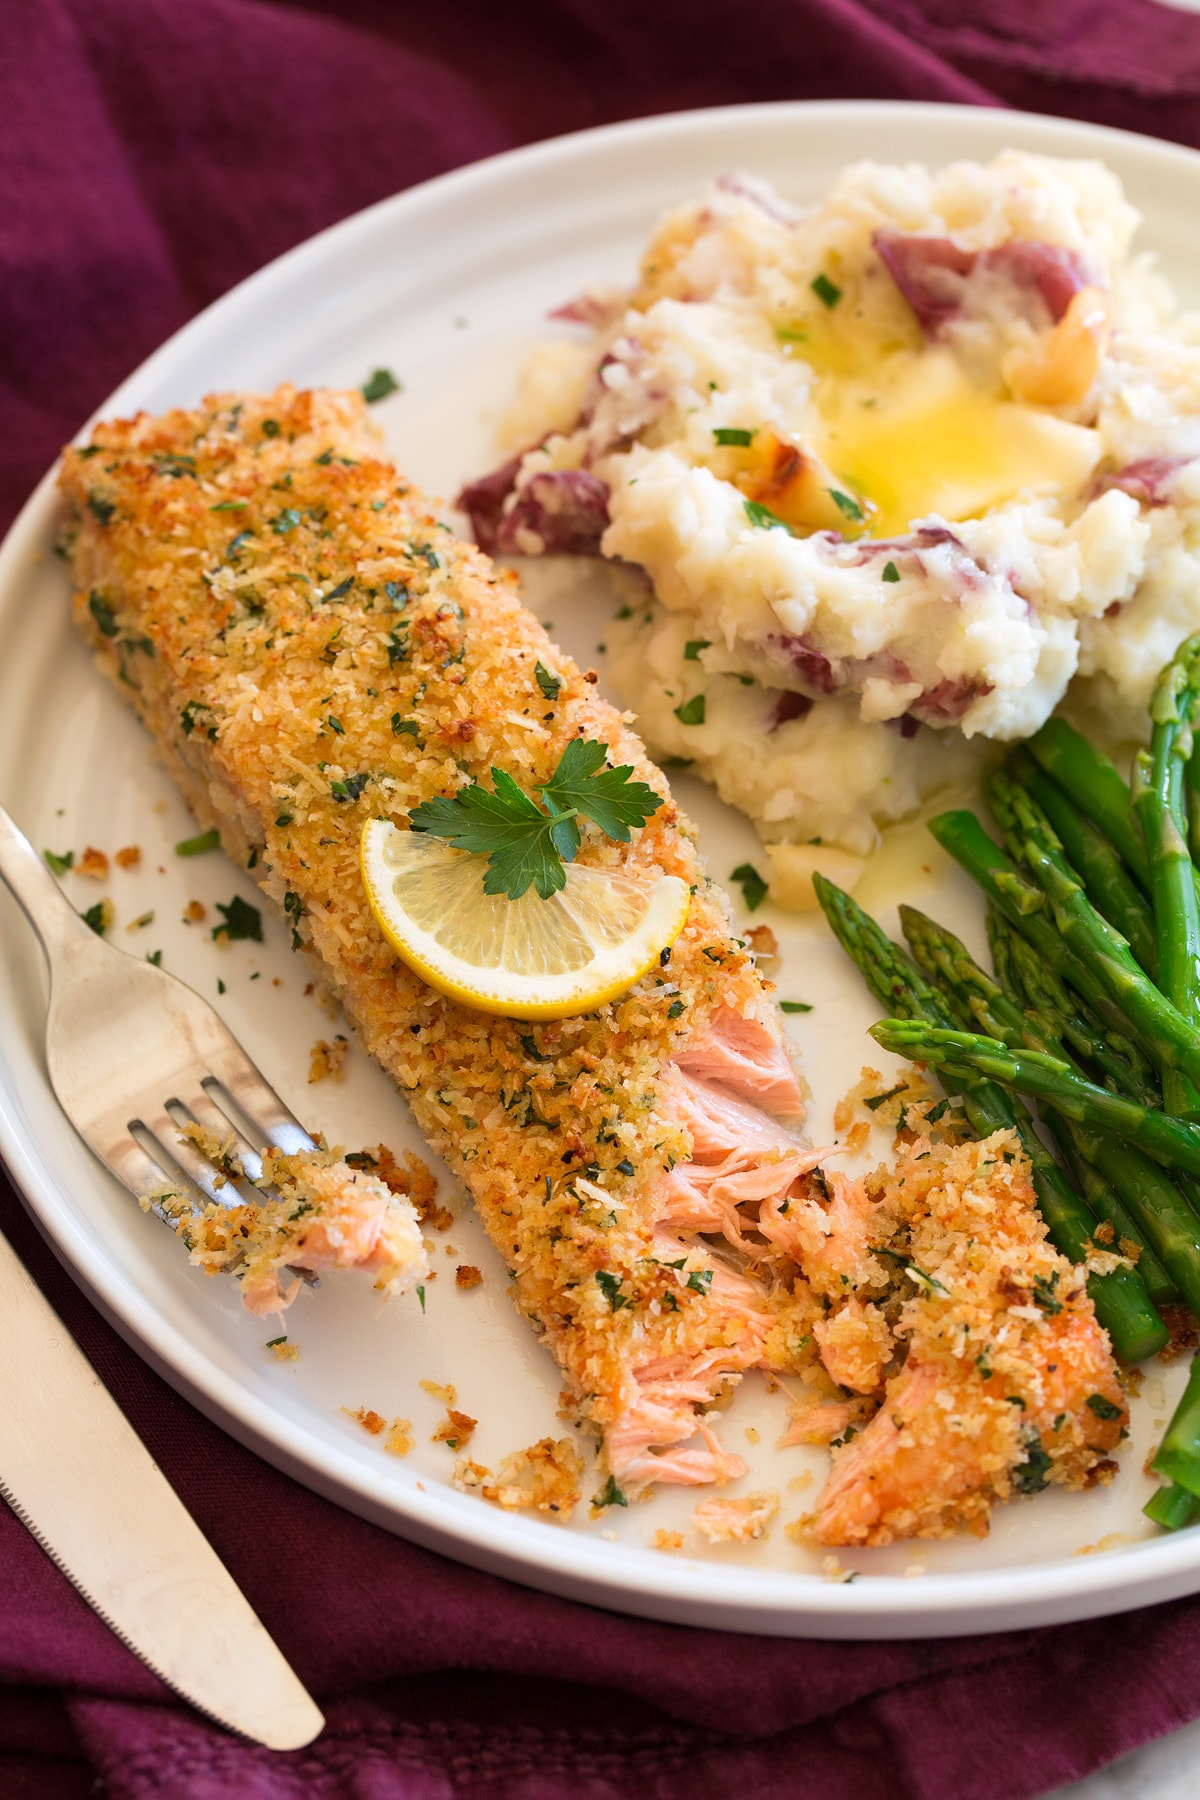 Baked salmon with parmesan and panko breadcrumb coating shown served on a plater with asparagus and garlic mashed potatoes.